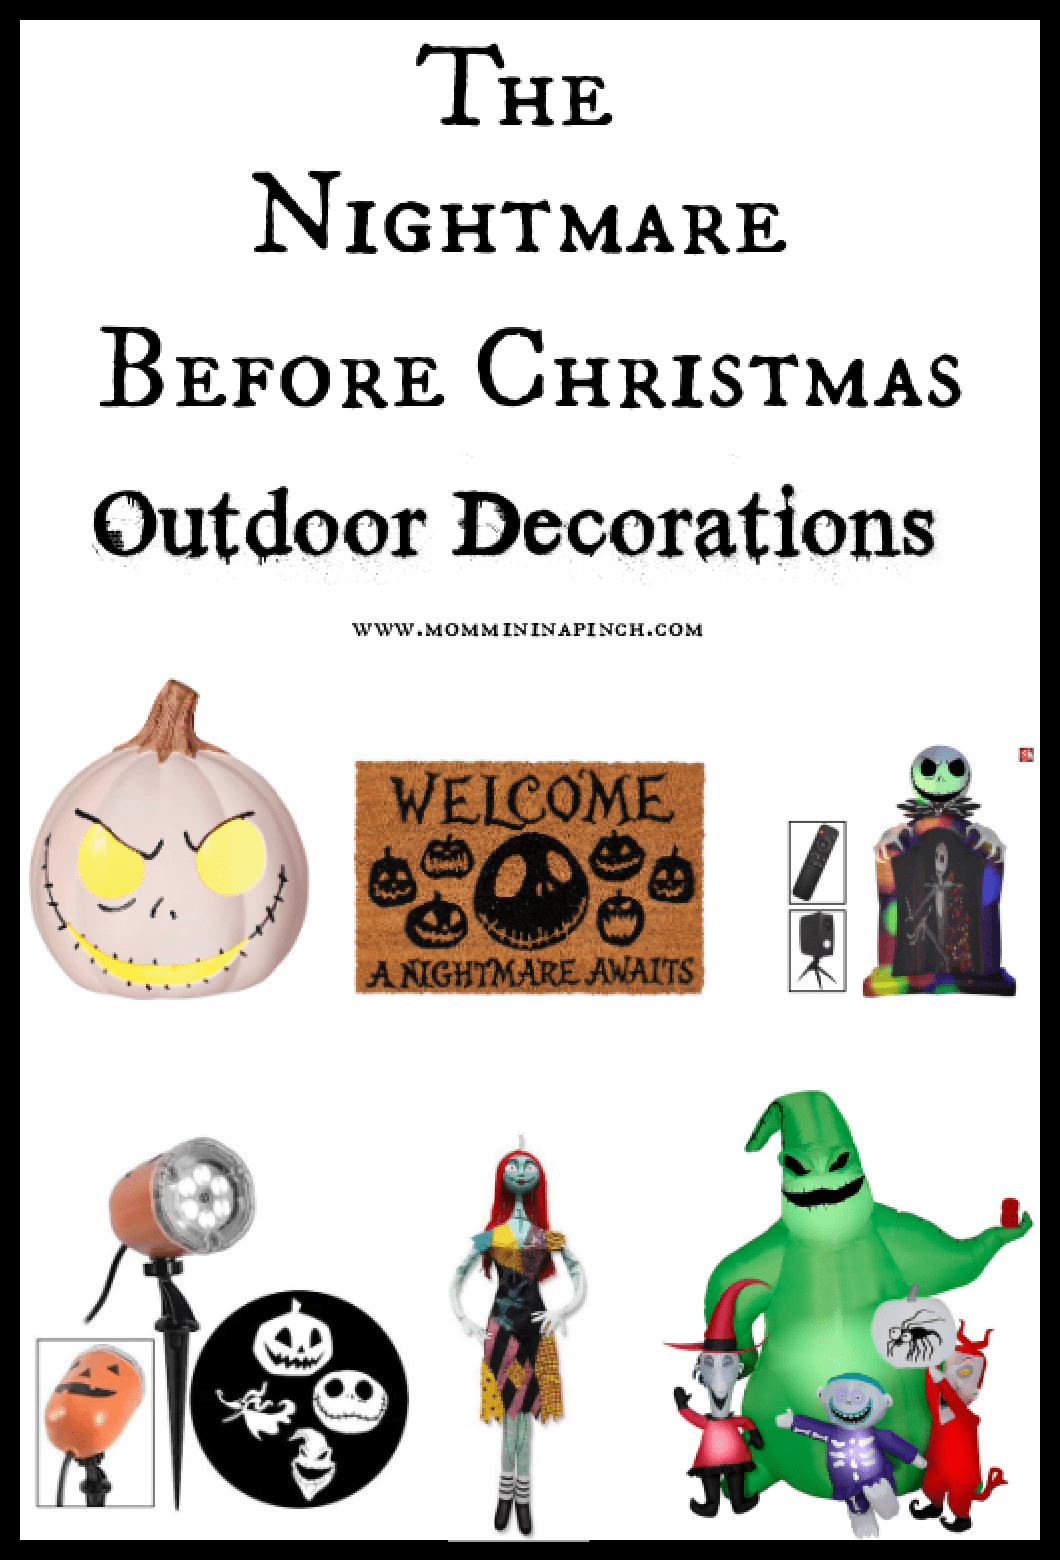 The Nightmare Before Christmas Outdoor Decorations Mommin In A Pinch